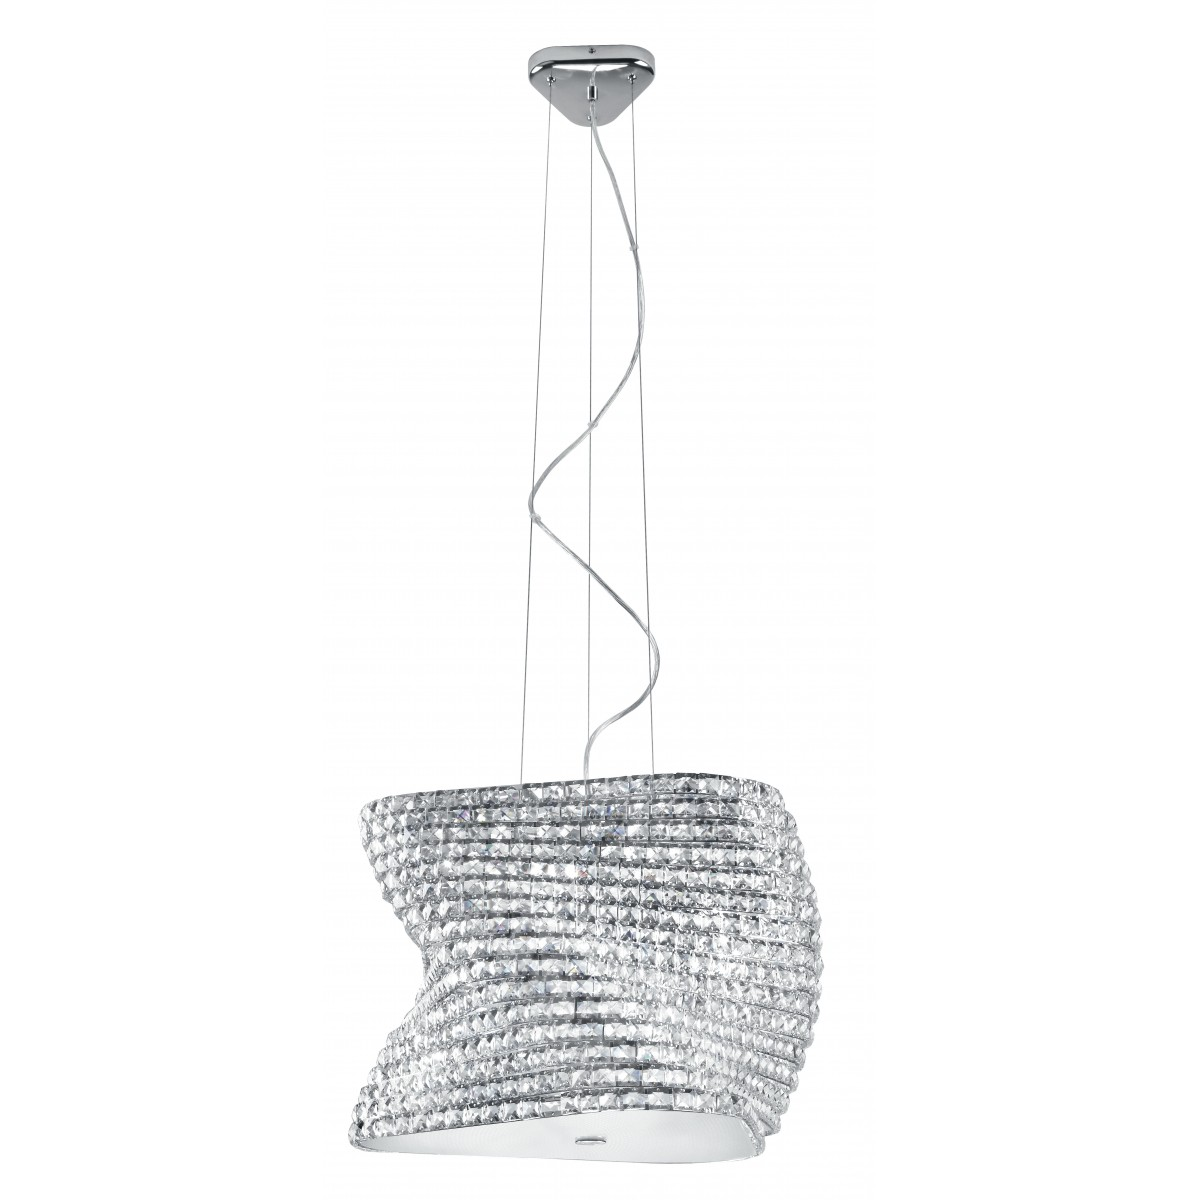 I-FLAMENCO / S55 - Suspension de lustre en métal chromé K9 Diffuseur de cristaux Modern Glass G9